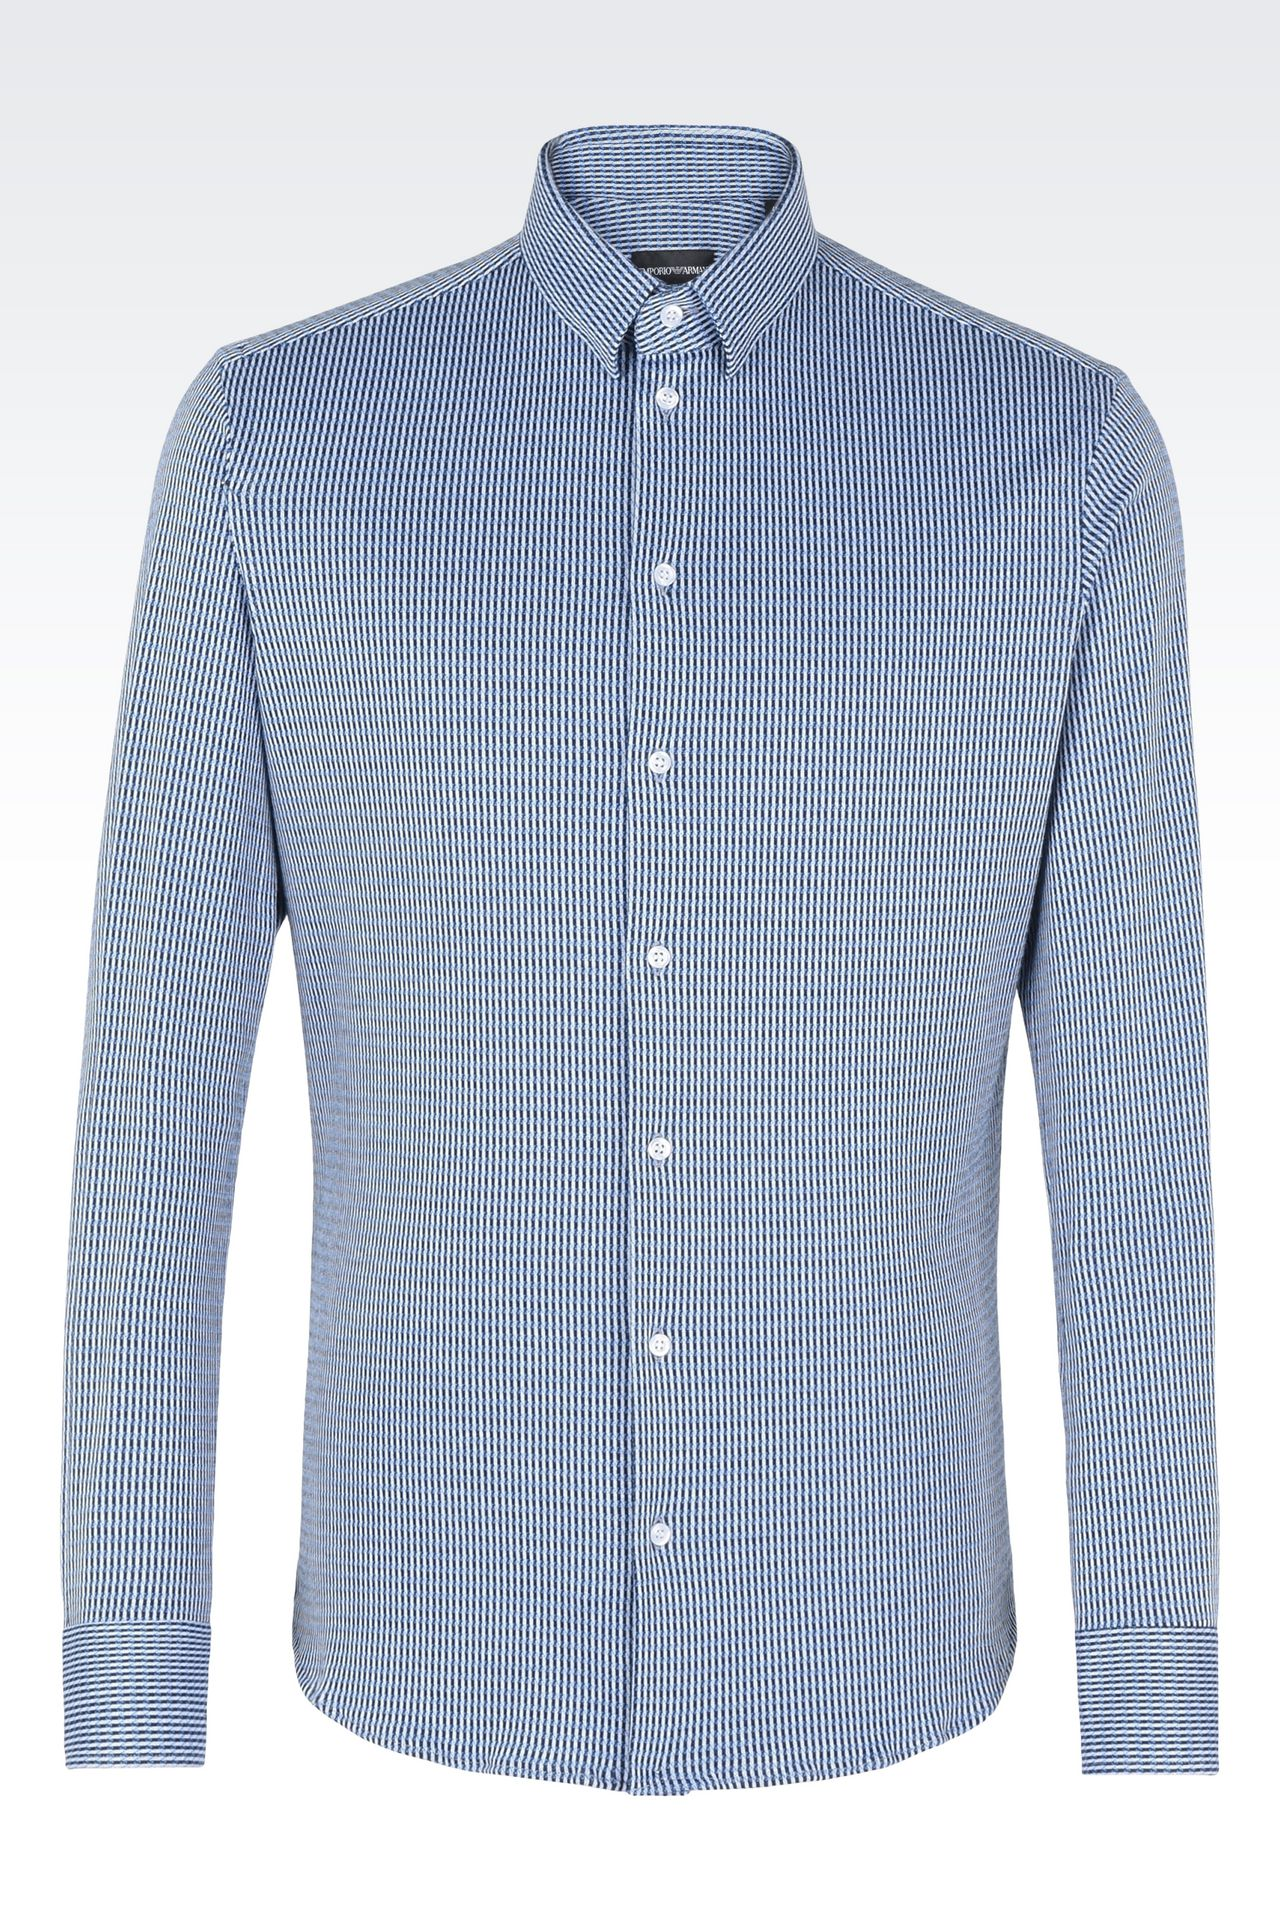 Emporio Armani Men's Shirts - Dress Shirts, Slim Fit, Casual ...